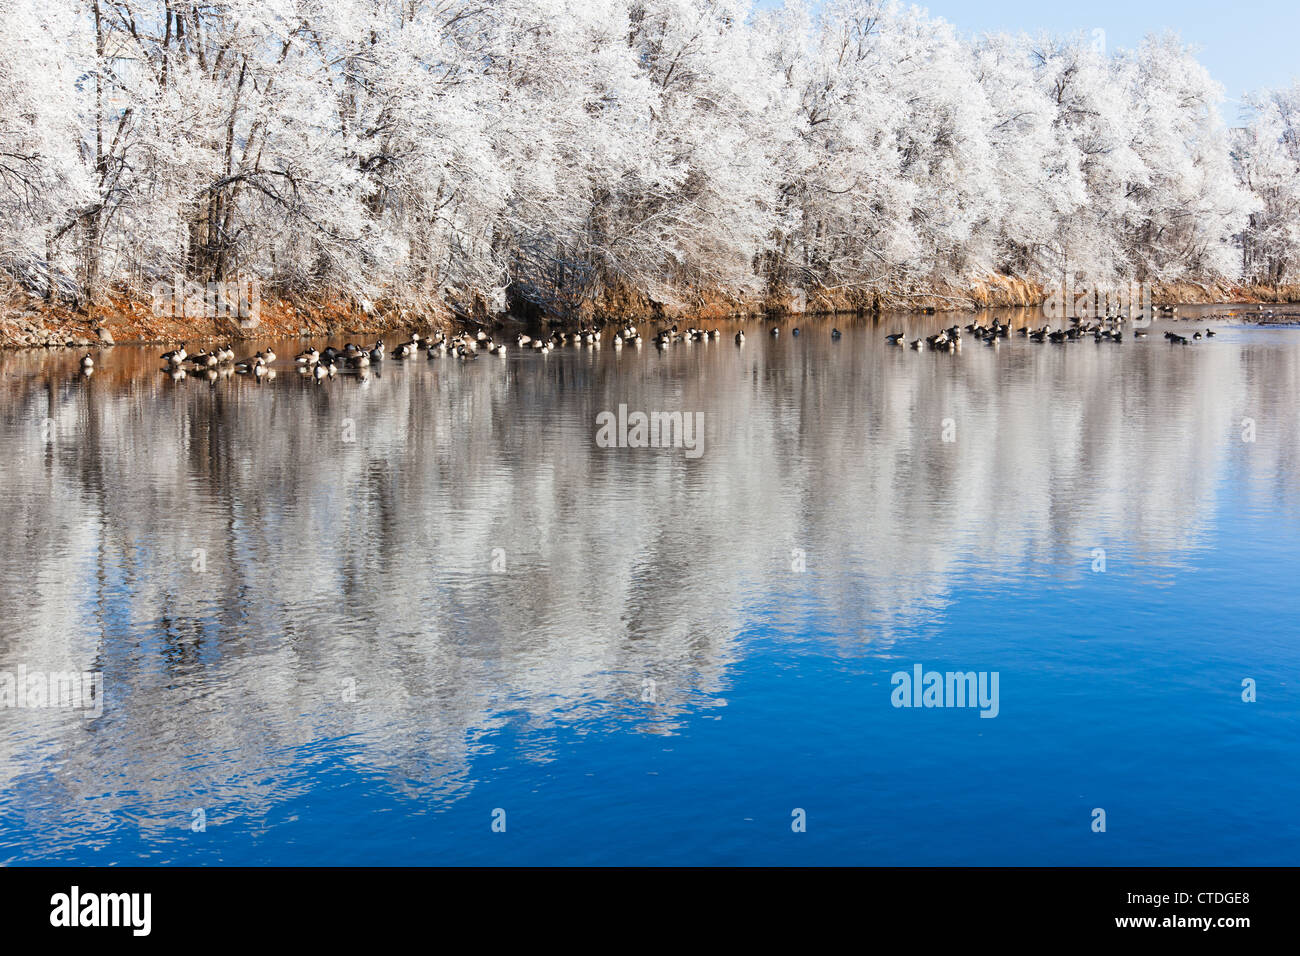 Geese rest along the South Platte River in Denver, Colorado on a frosty cold winter morning. - Stock Image